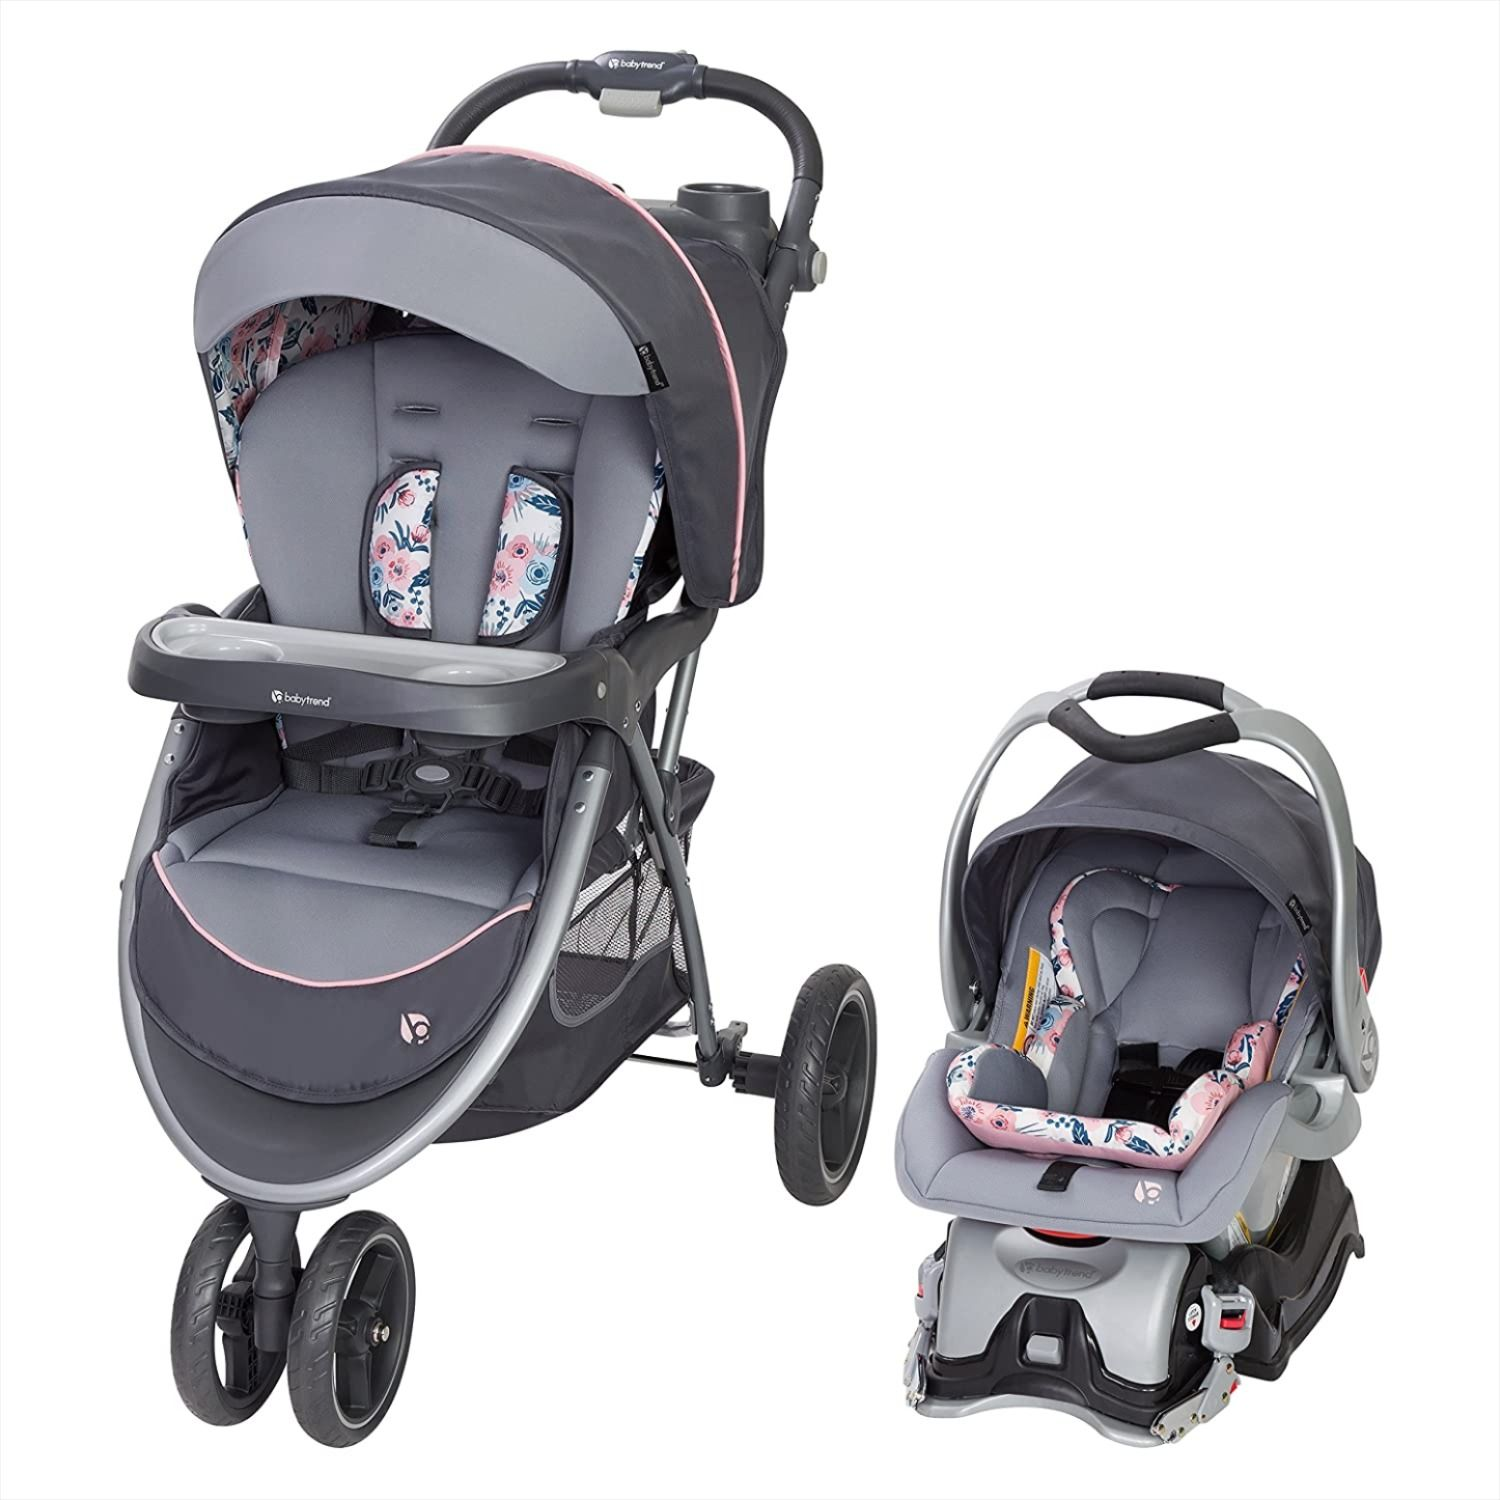 Pin on Baby strollers for jogging